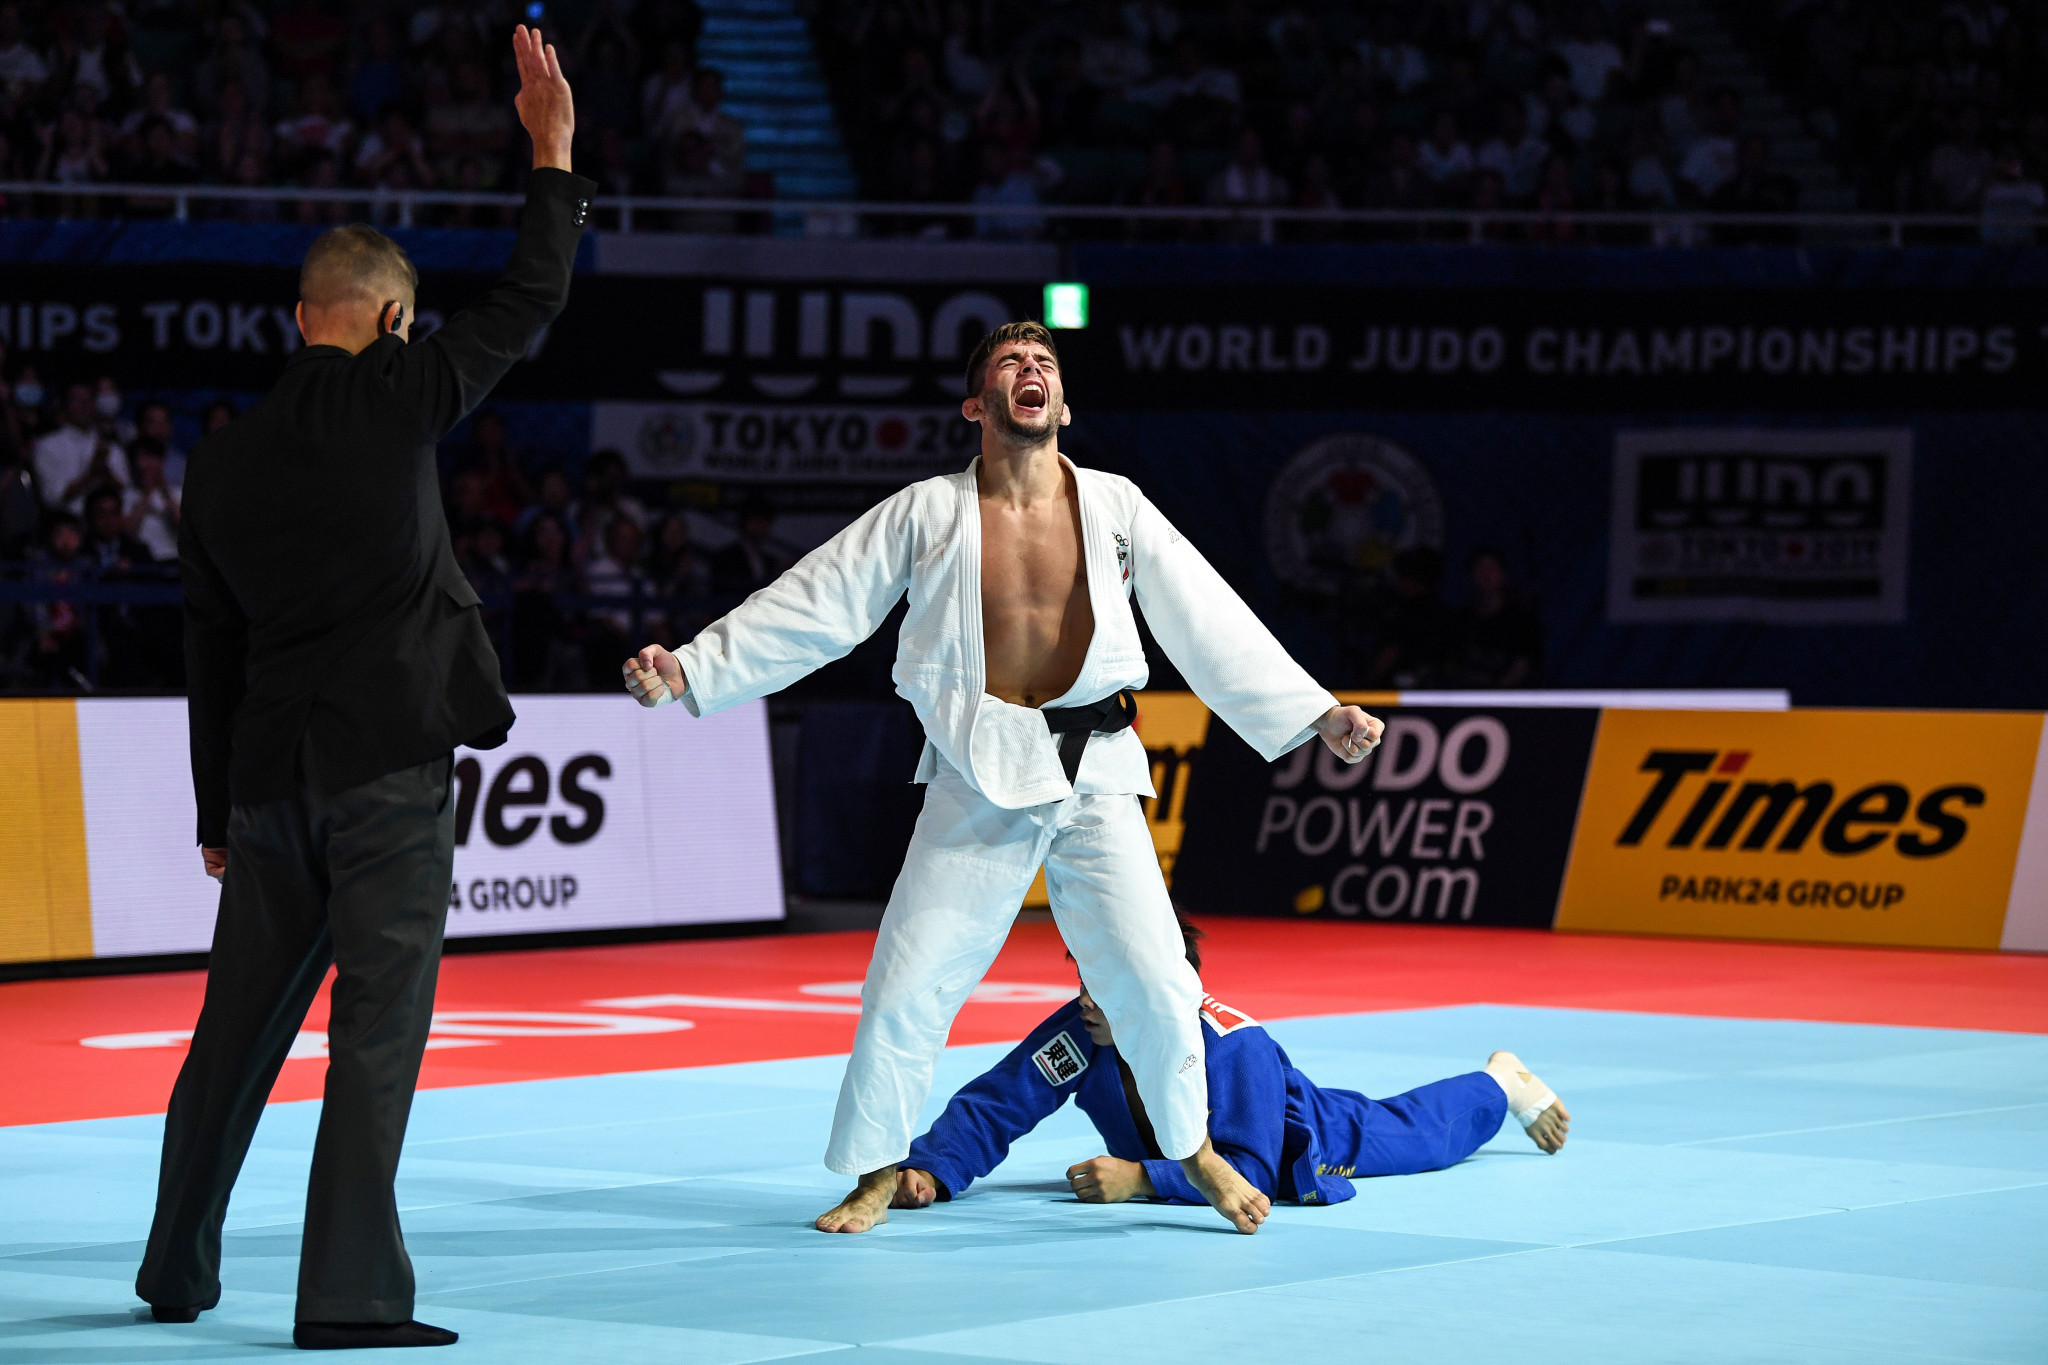 Italy's Manuel Lombardo celebrates after thinking he has won the bronze medal, only to have the decision overruled by video referee ©Getty Images